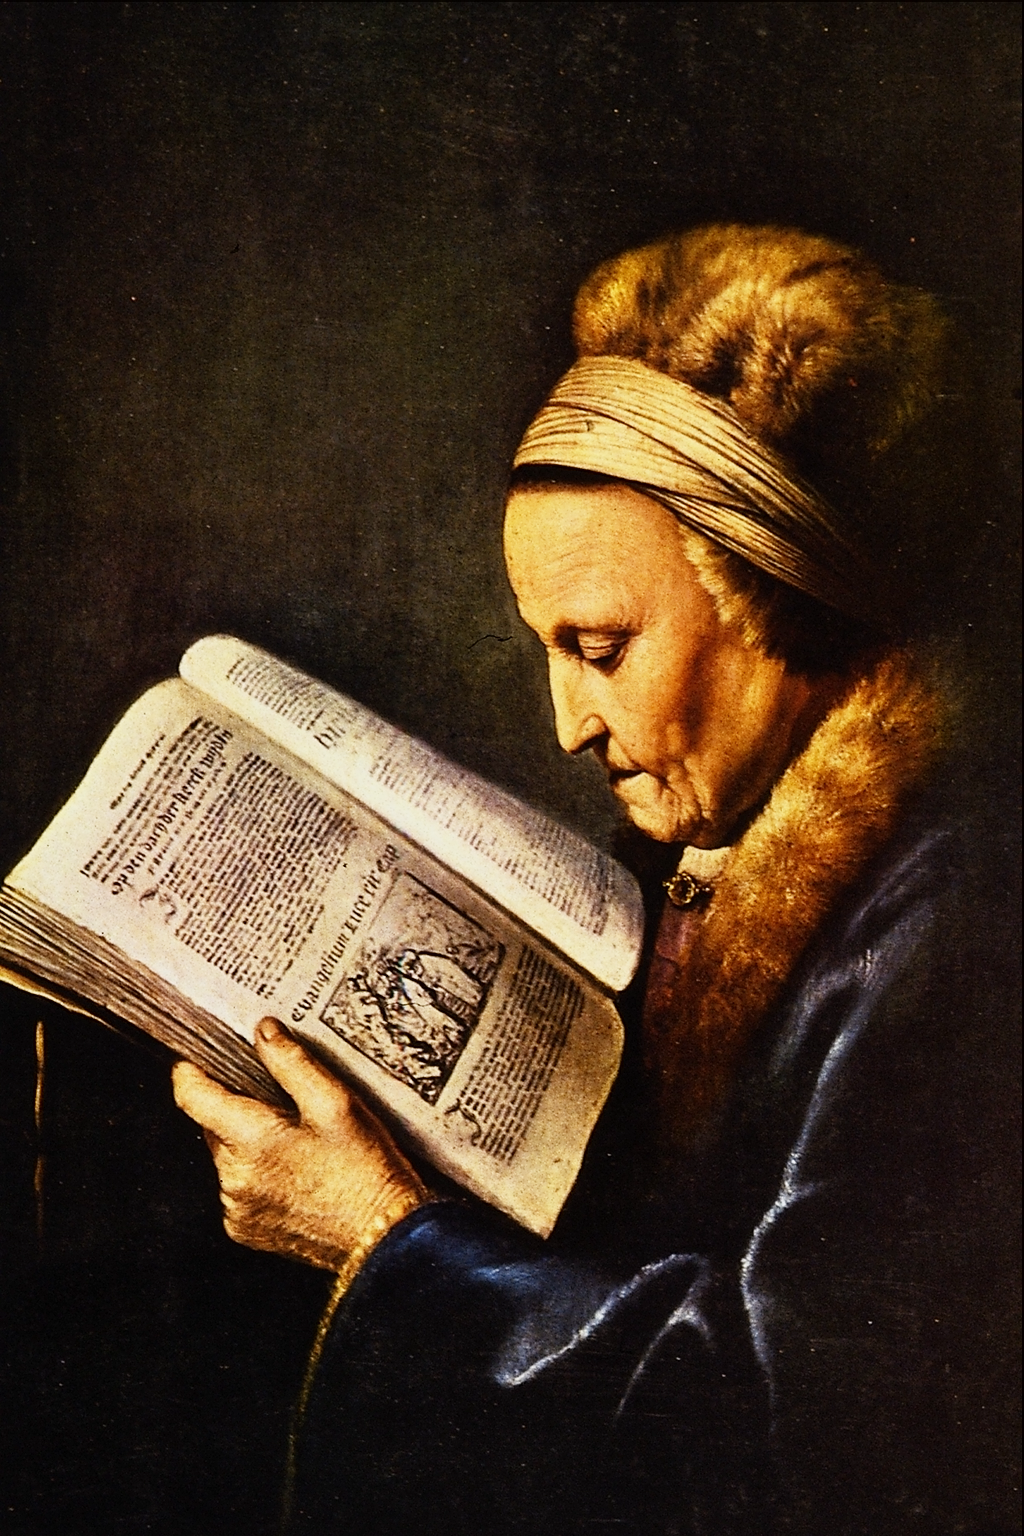 File:Rembrandt's Mother - Gerard Dou.png - Wikimedia Commons